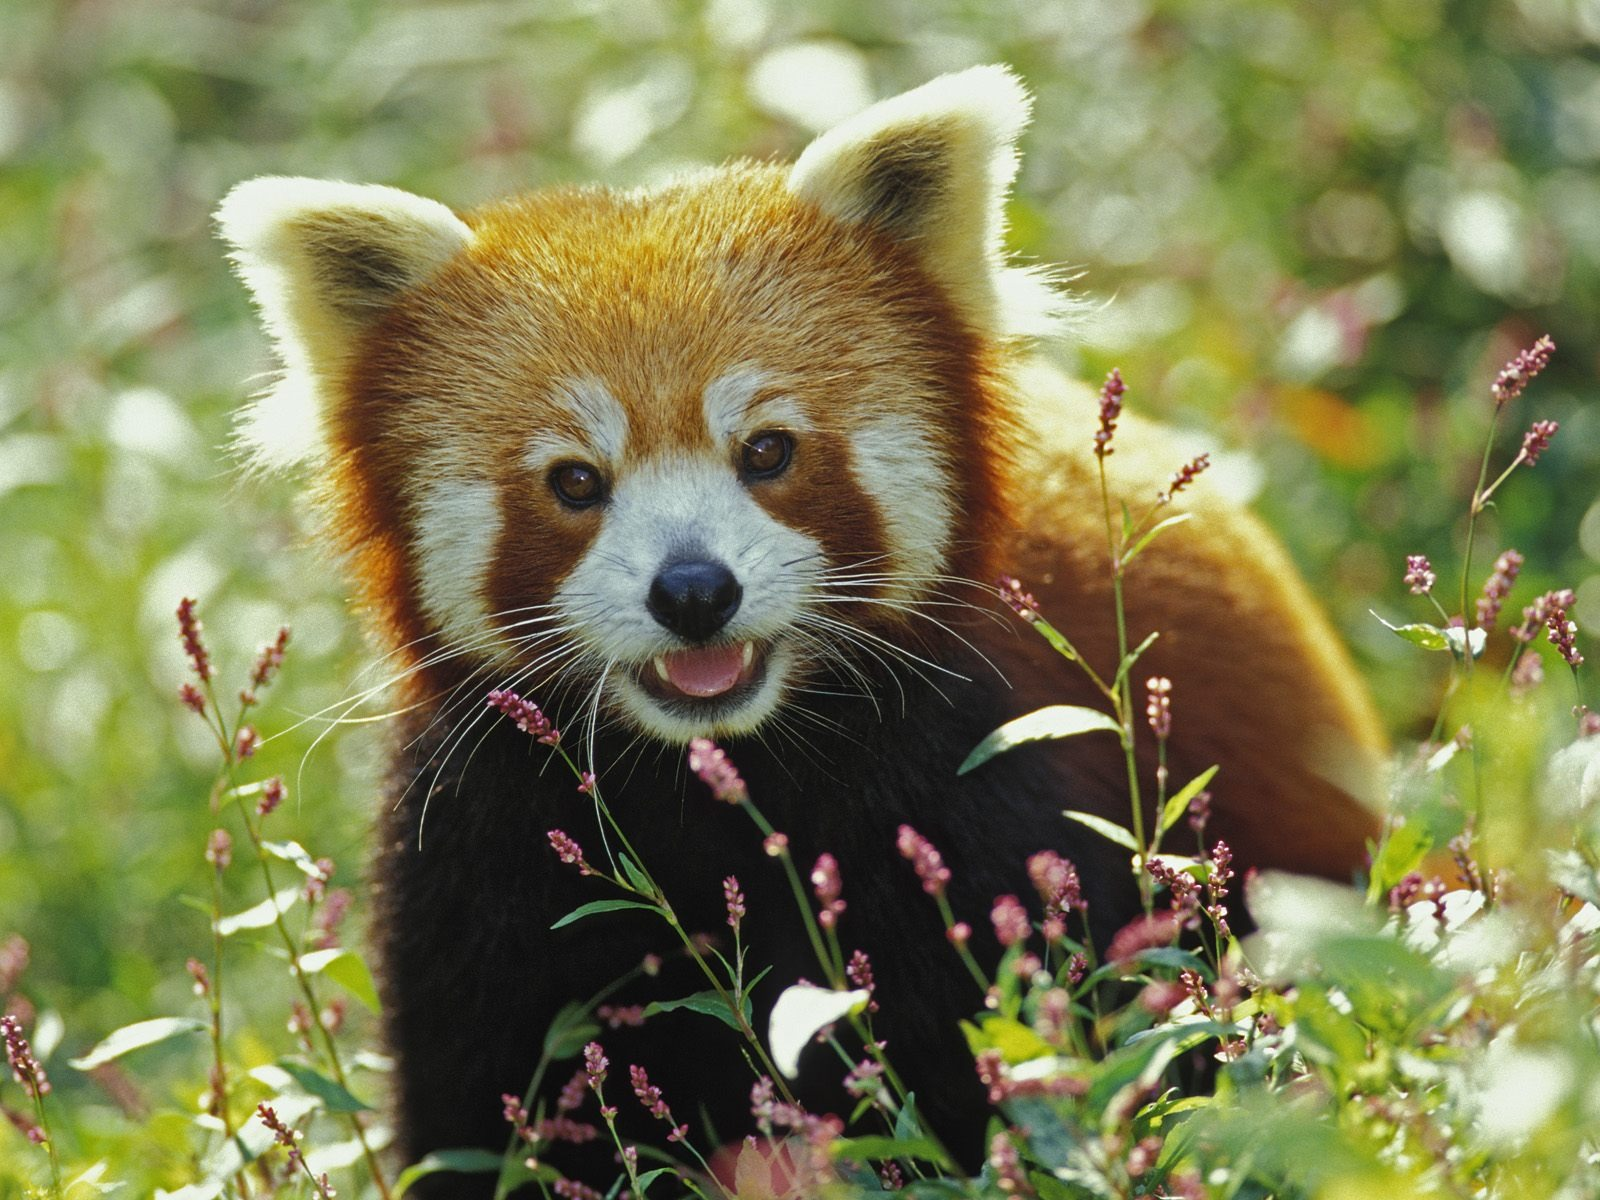 red panda wallpaper bears animals wallpapers in jpg format for free